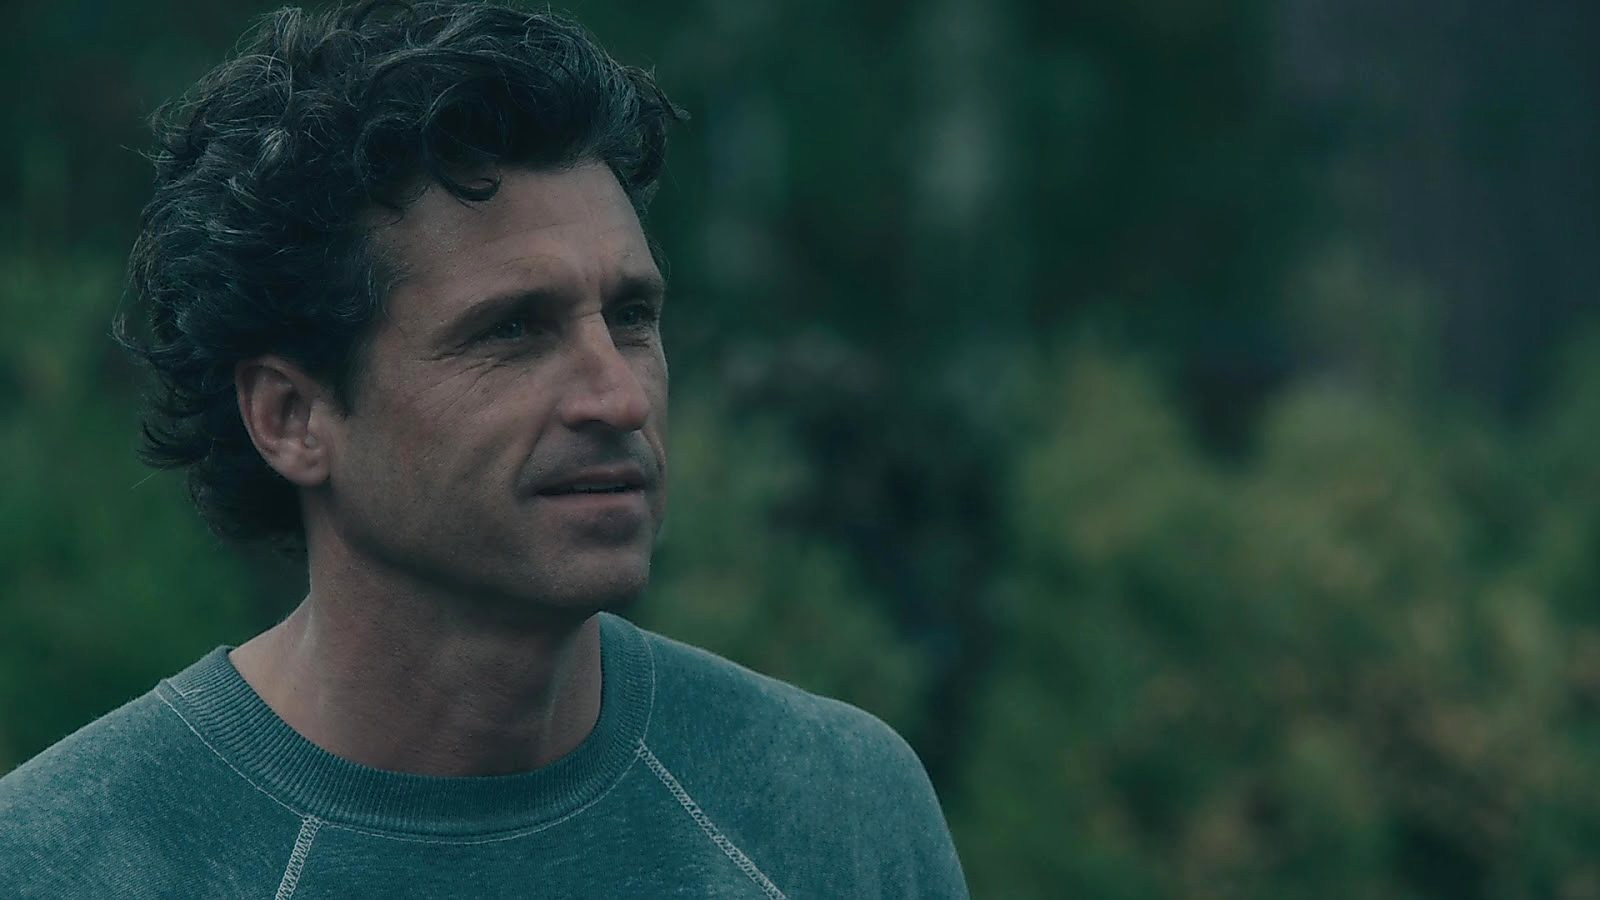 Patrick Dempsey The Truth About Harry Quebert Affair S01E06 2018 10 14 2